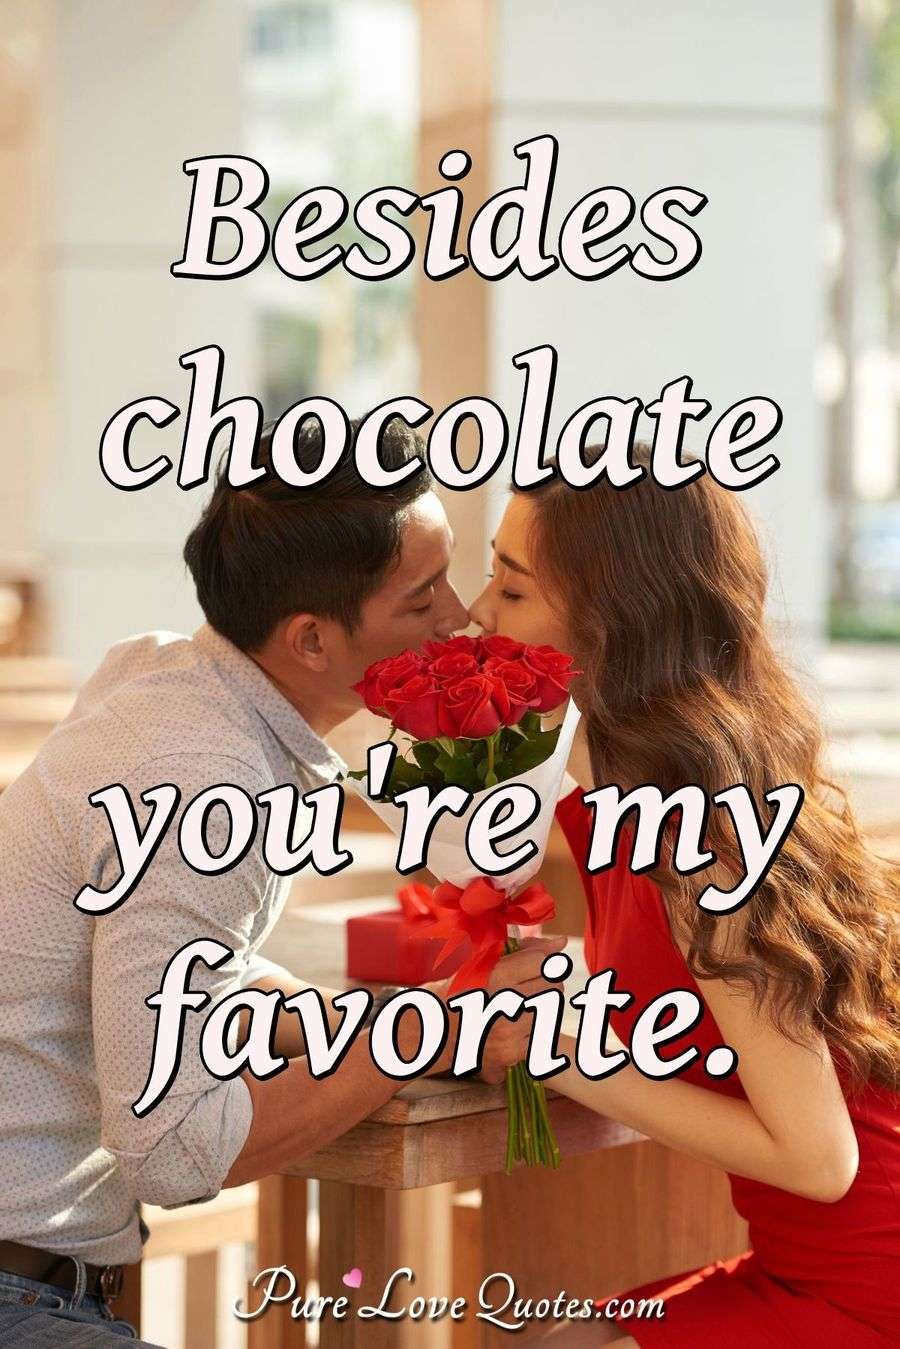 Besides Chocolate Youre My Favorite Purelovequotes